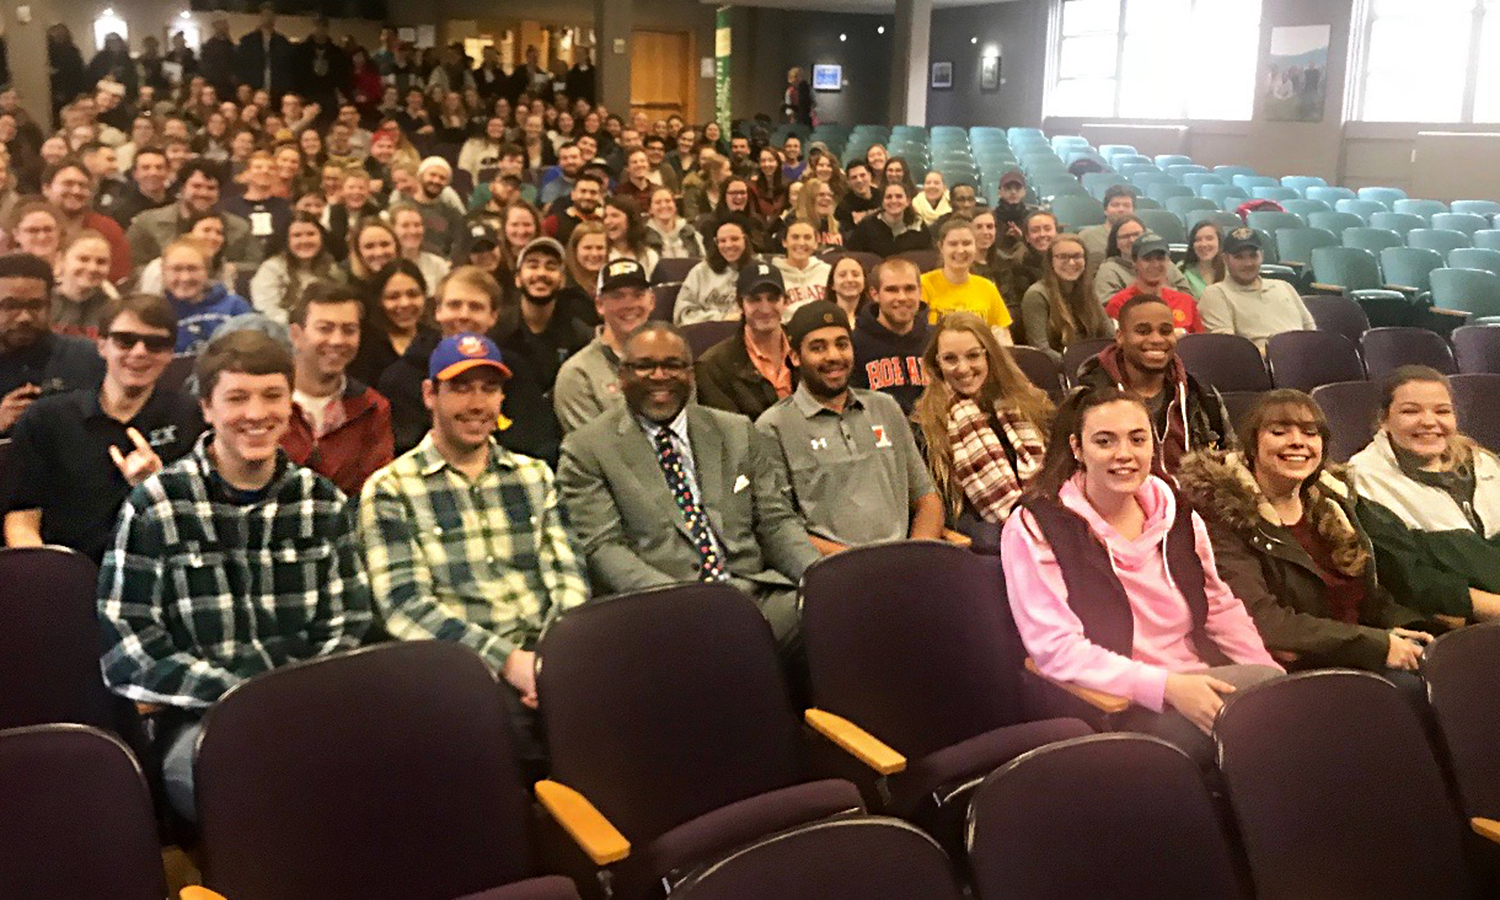 After giving a presention on the final 75 days of the spring semester, President Gregory J. Vincent '83 gathers for a photo with members of the HWS Classes of 2018 in Albright Auditorium.